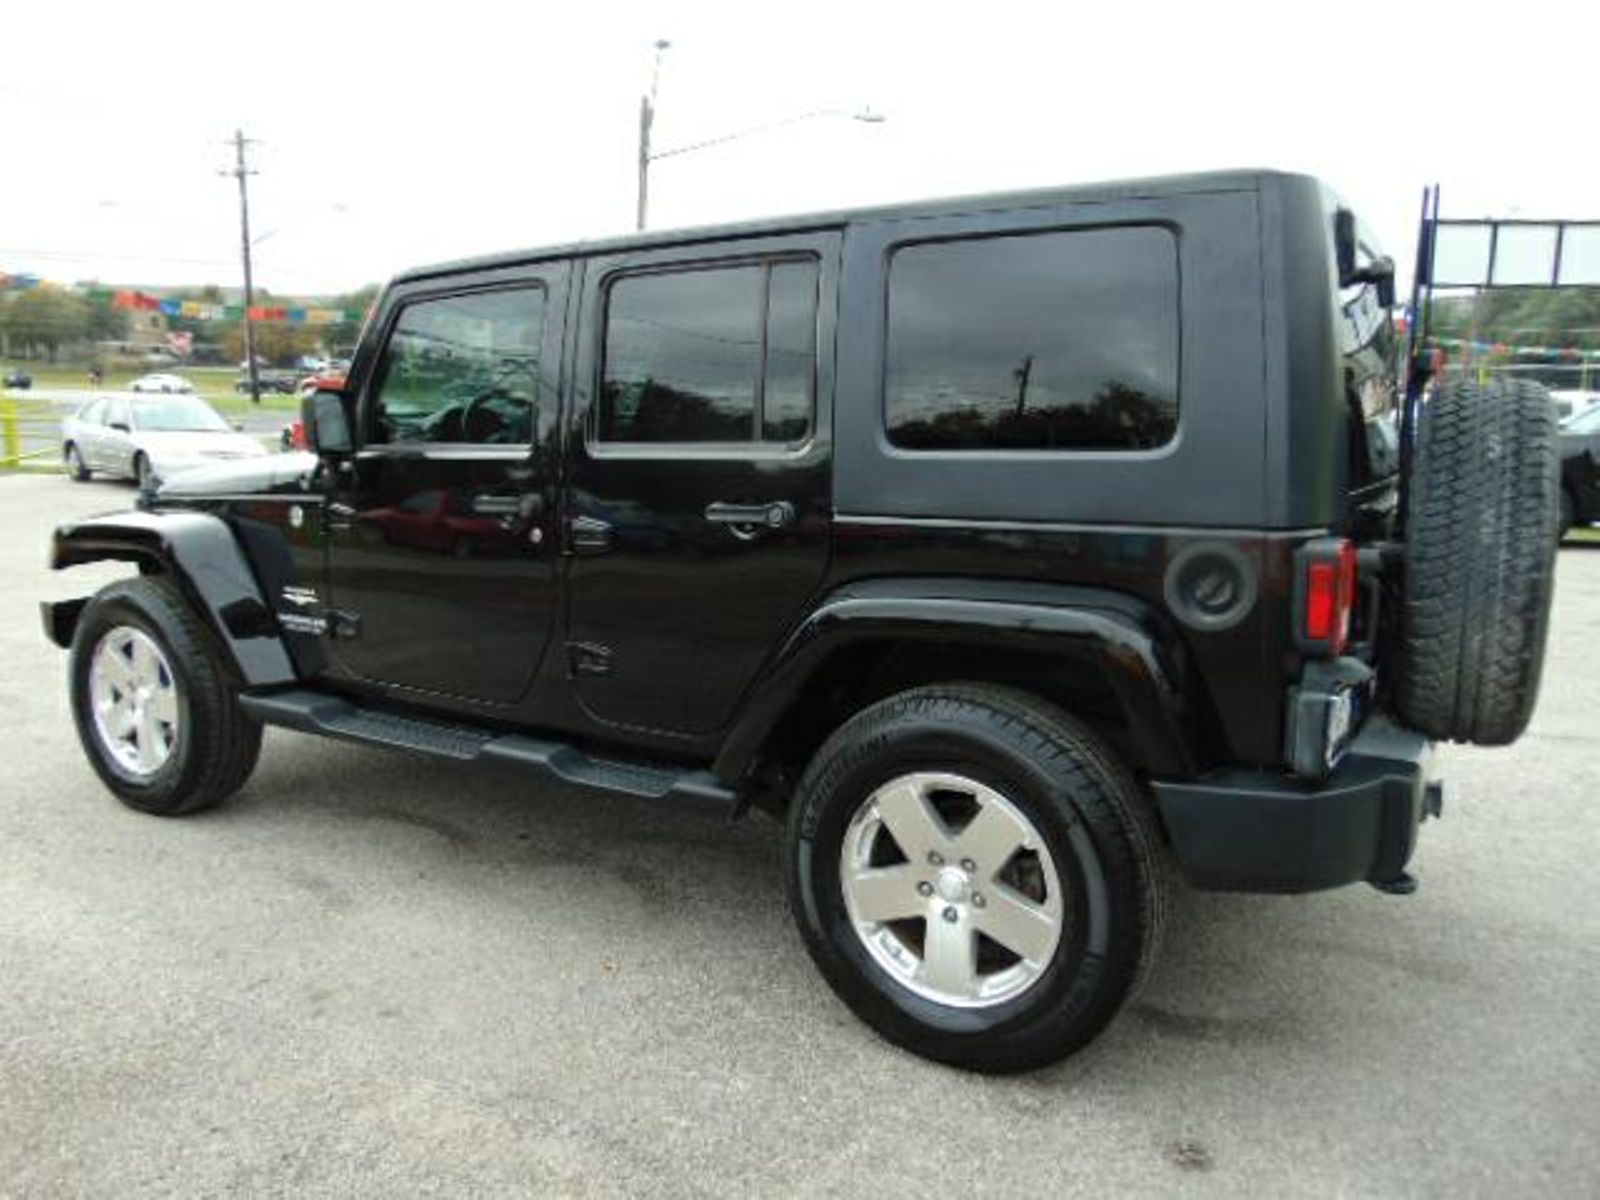 gallery driving jeep killeen exterior sahara near texas austin wrangler sale city for image jk